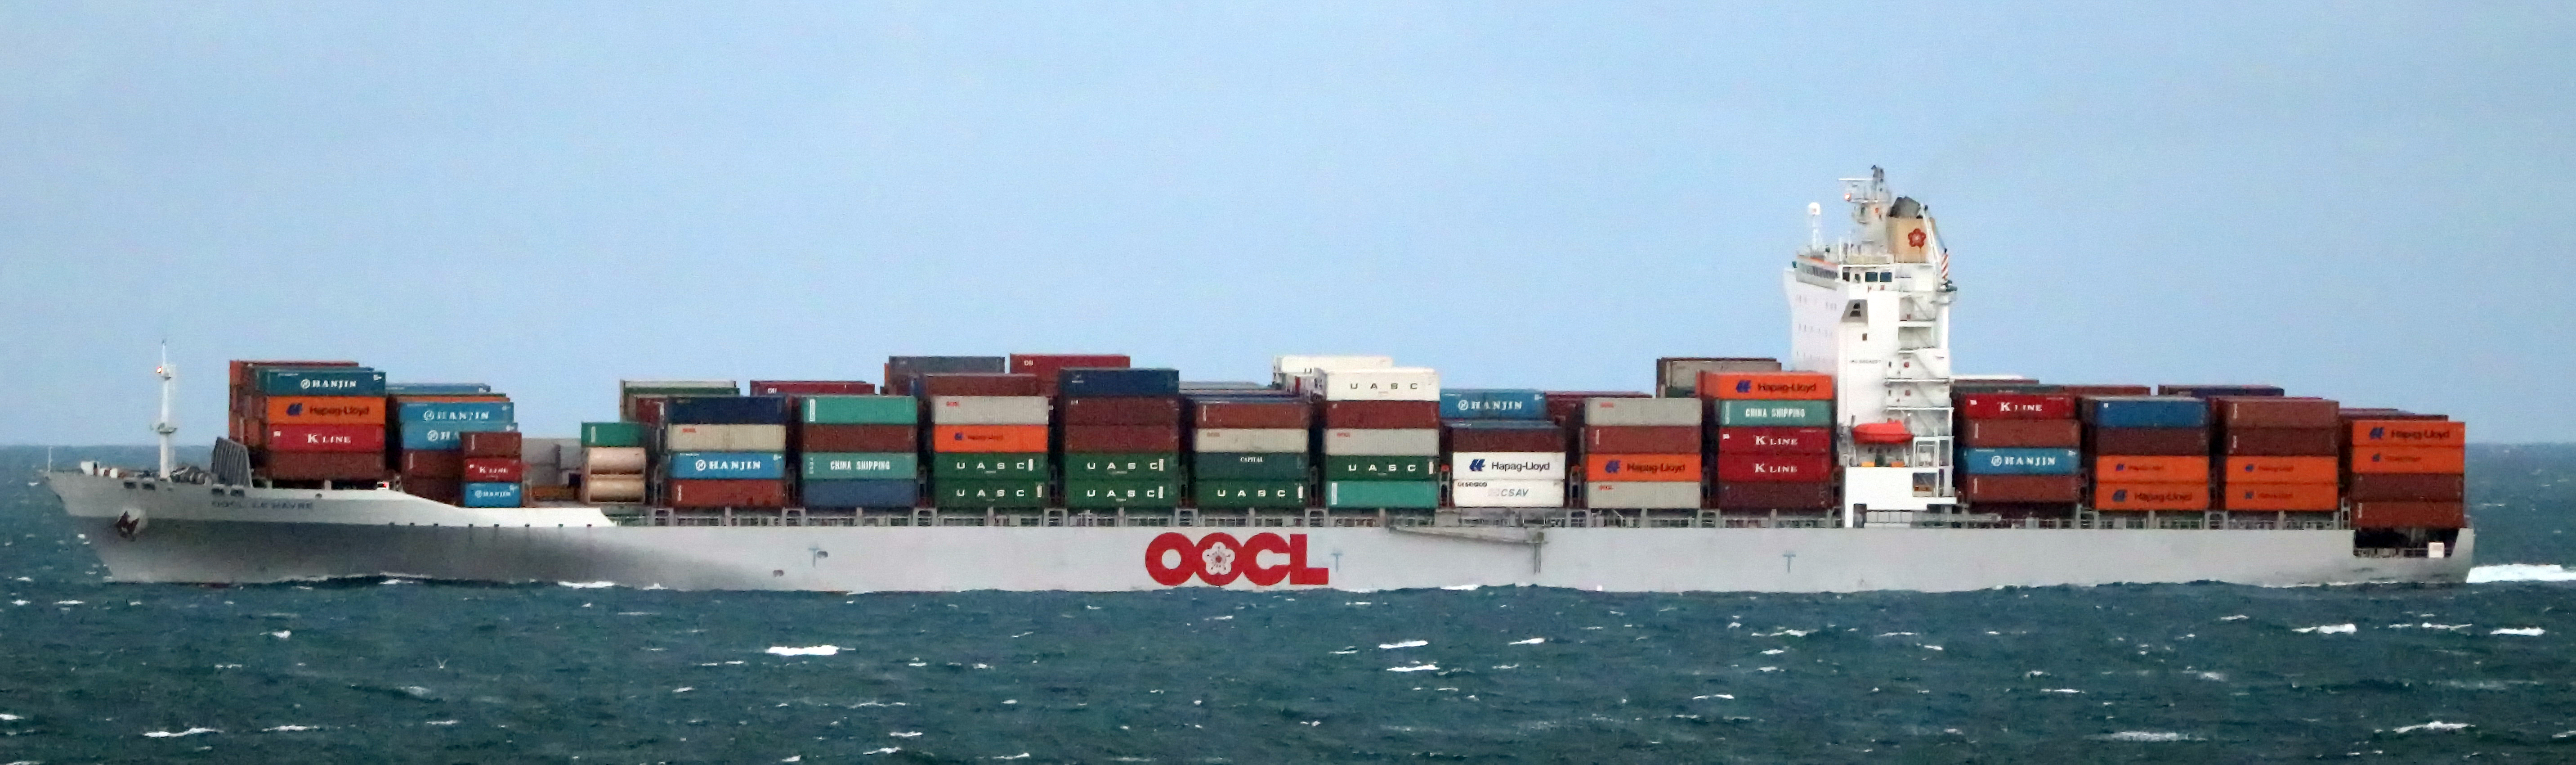 OOCL Announces Improvements to the Middle East Service 4